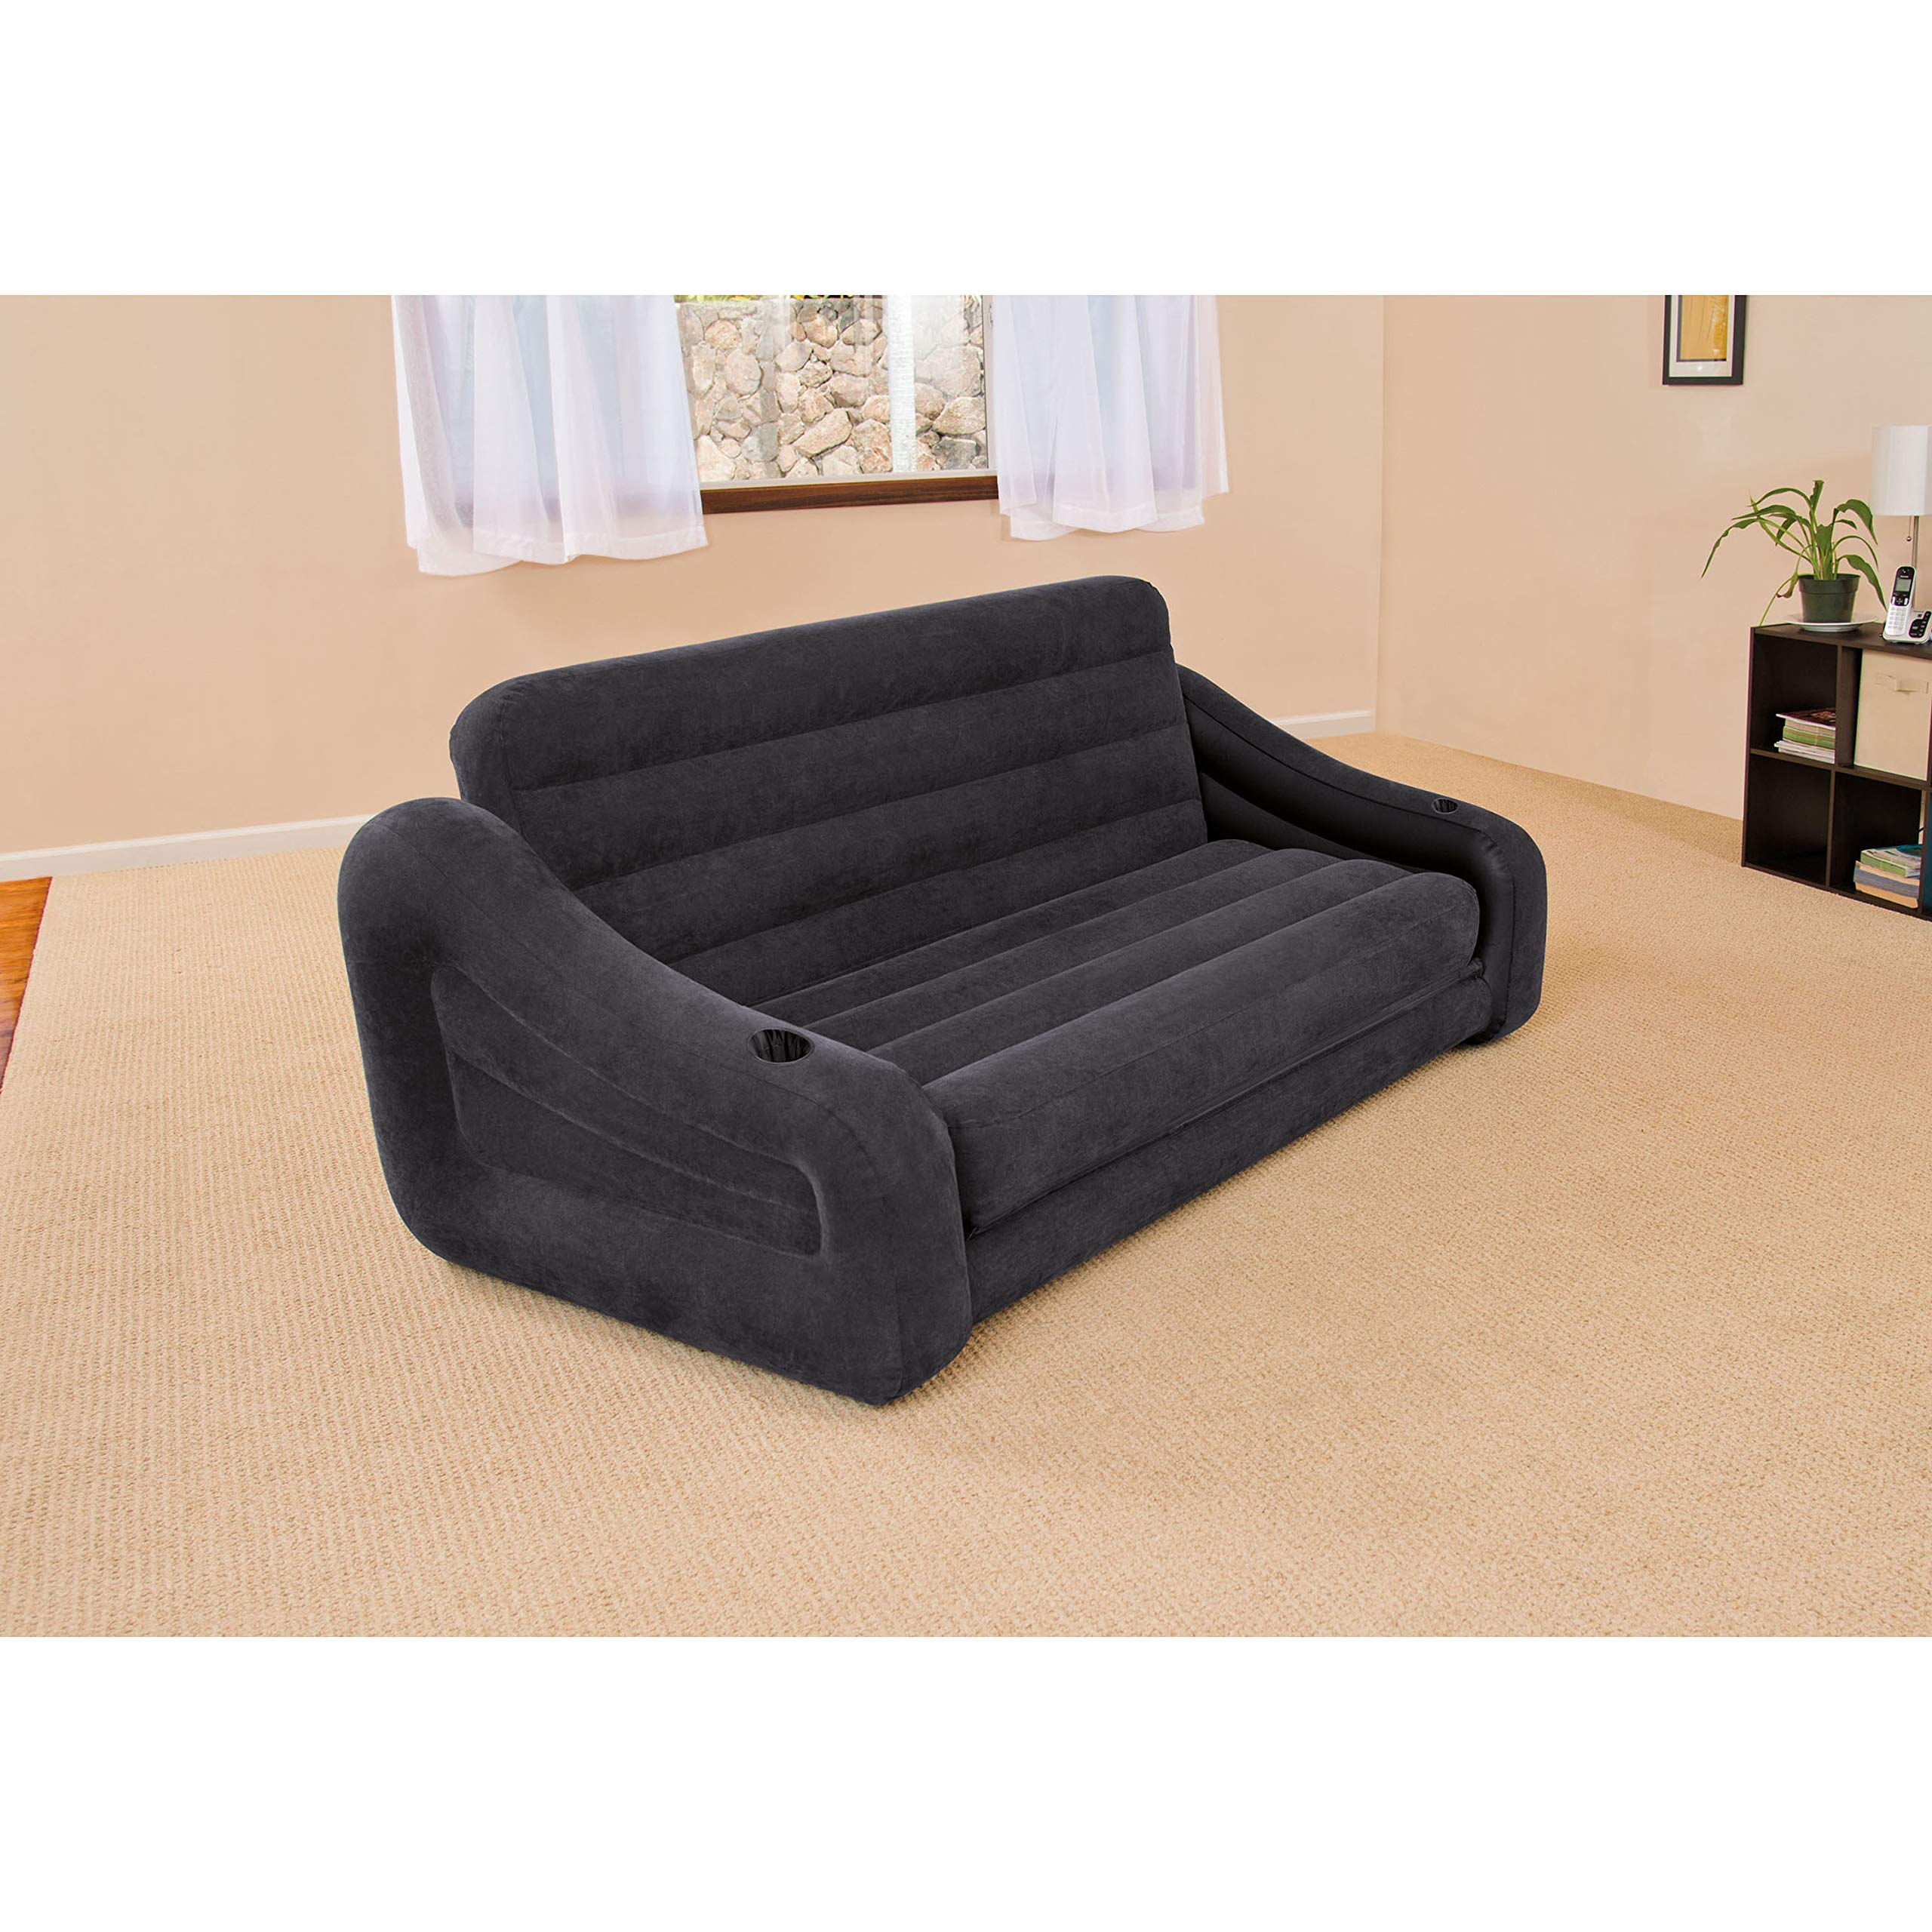 Intex Pull-out Sofa Inflatable Bed, 76'' X 87'' X 26'', Queen by Intex